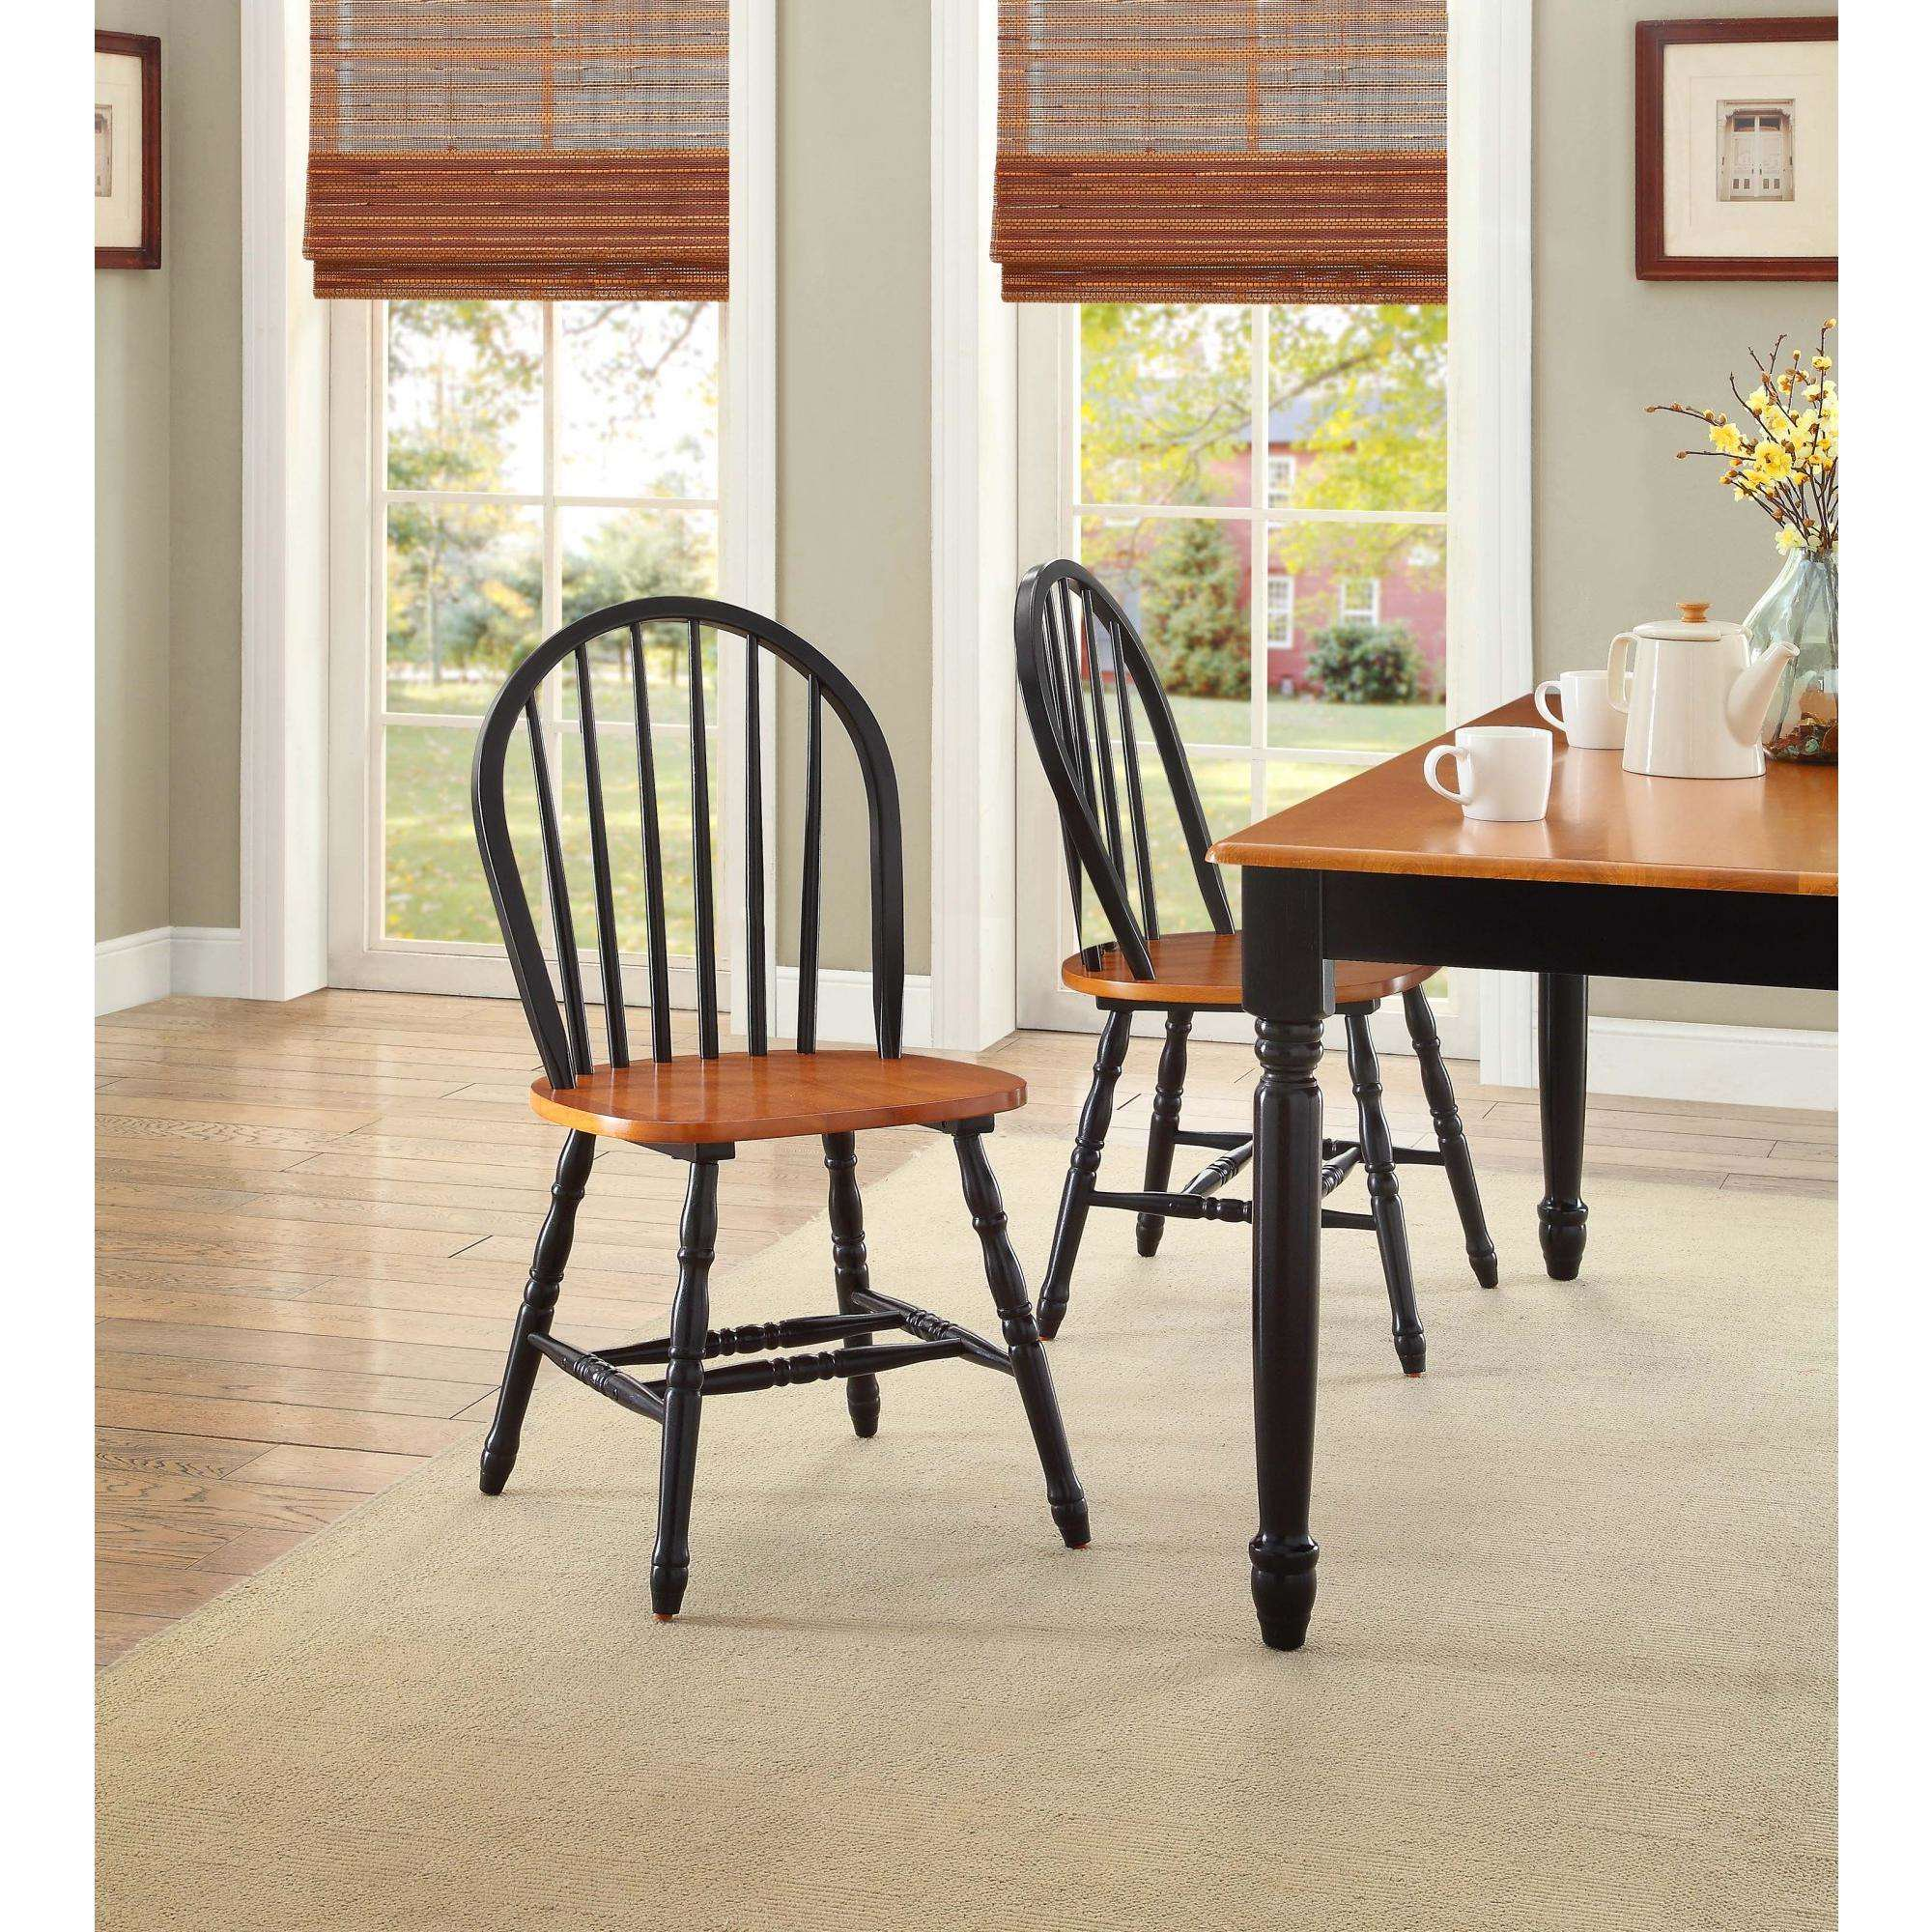 Better Homes And Gardens® Autumn Lane 7 Piece Dining Set